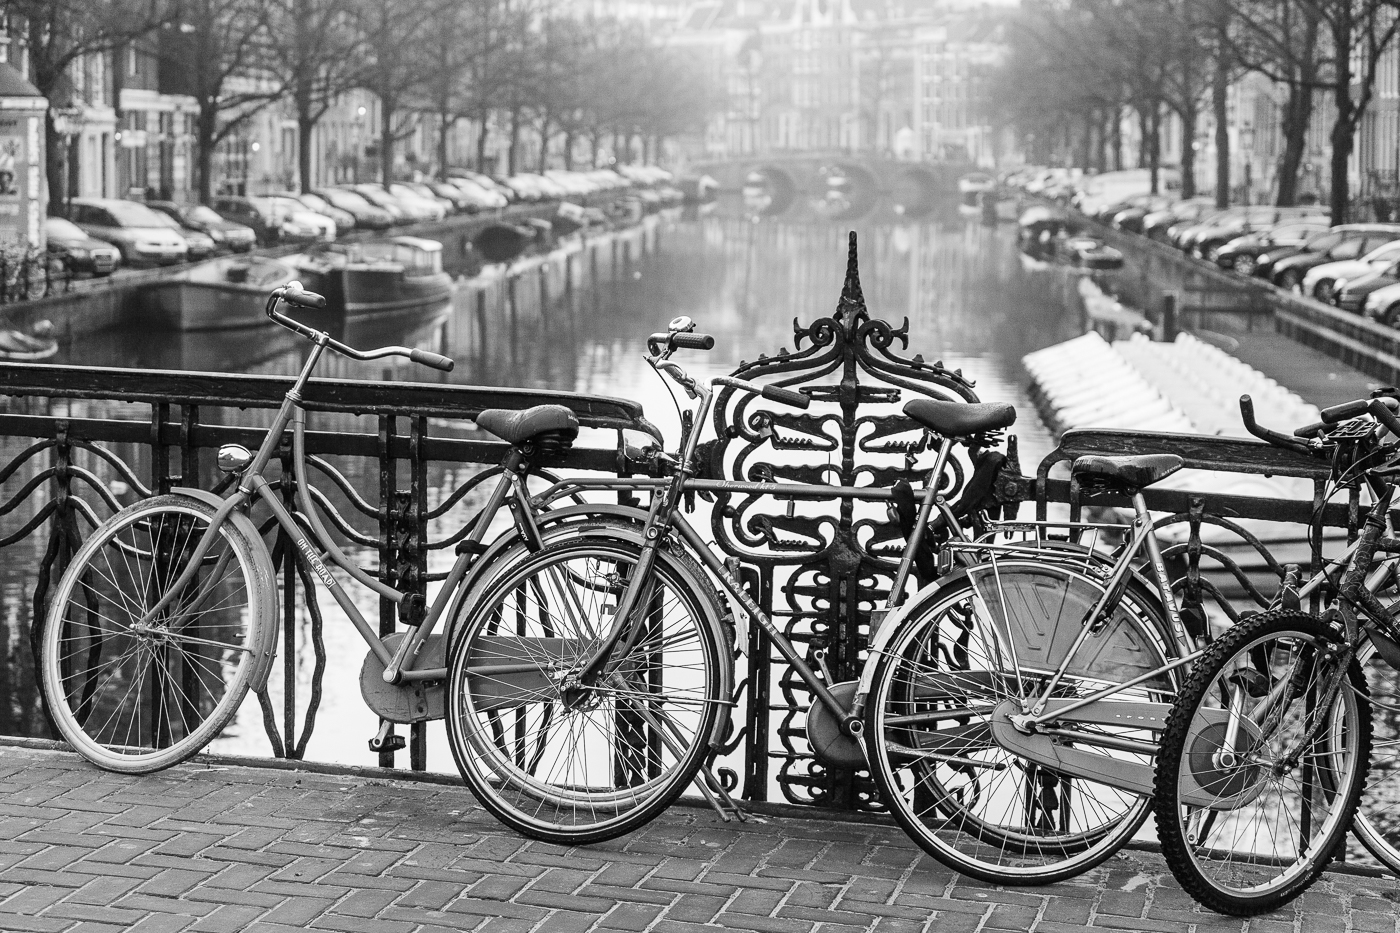 Amsterdam-transport-by-David-Townshend